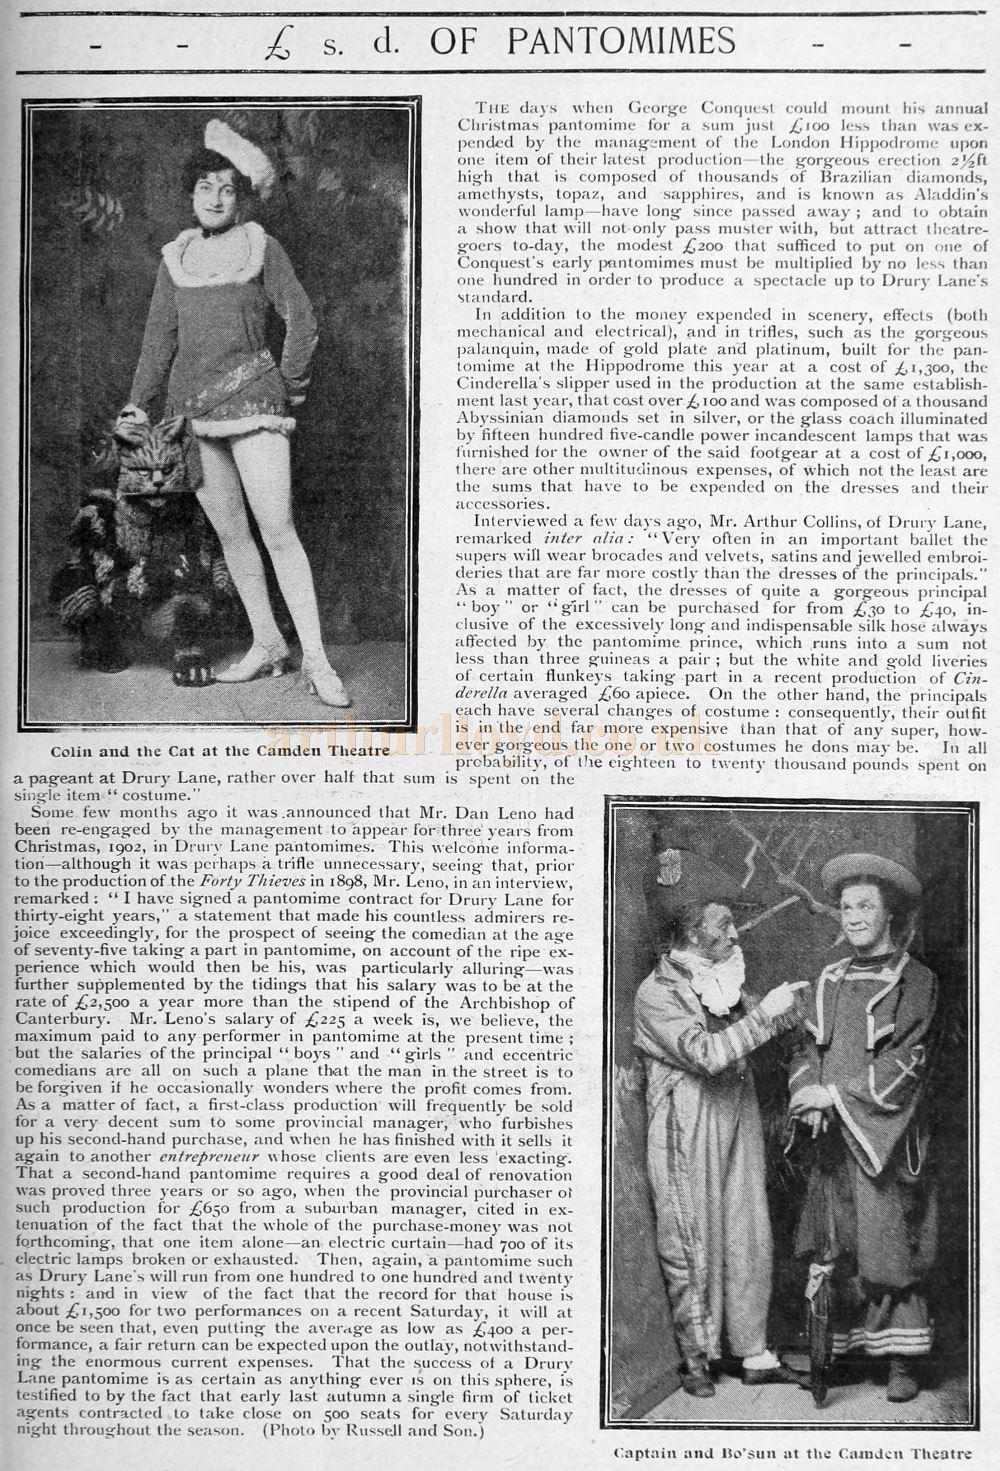 The £ s. d. of Pantomimes - From Black & White Budget, 18th January 1902.